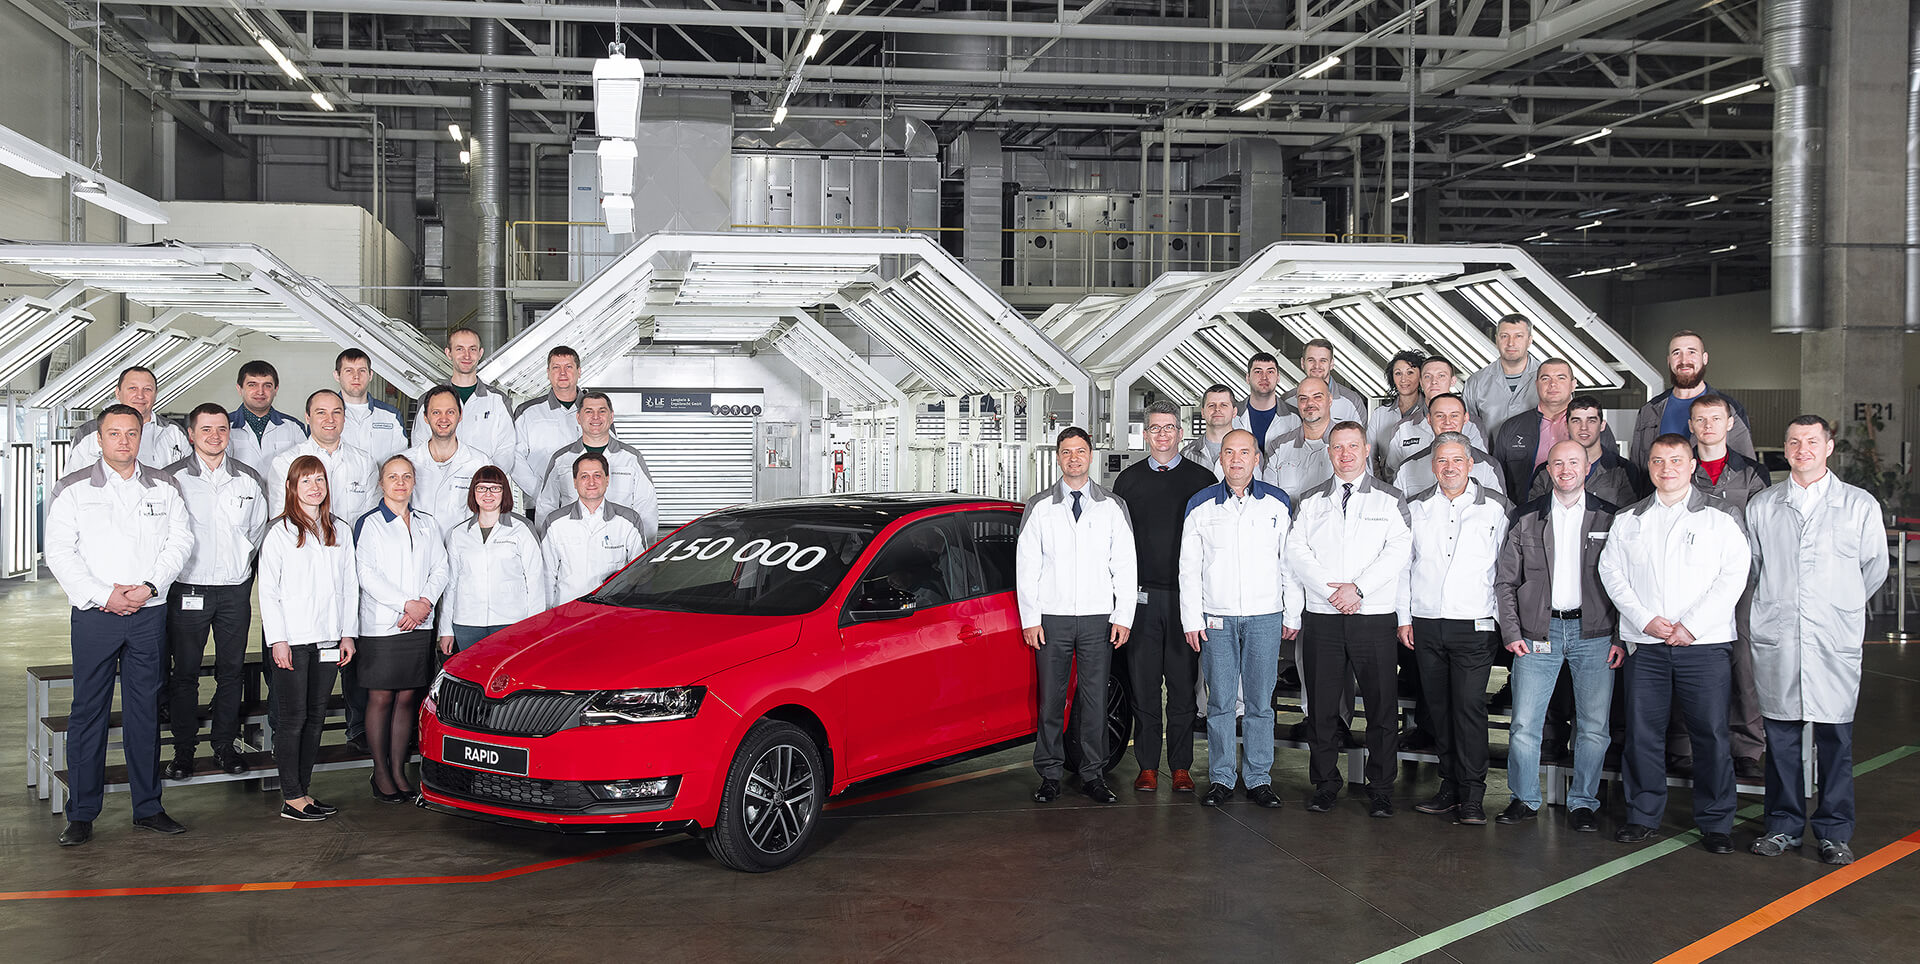 New Milestone for ŠKODA in Russia as 150,000th RAPID Rolls off the Assembly Line